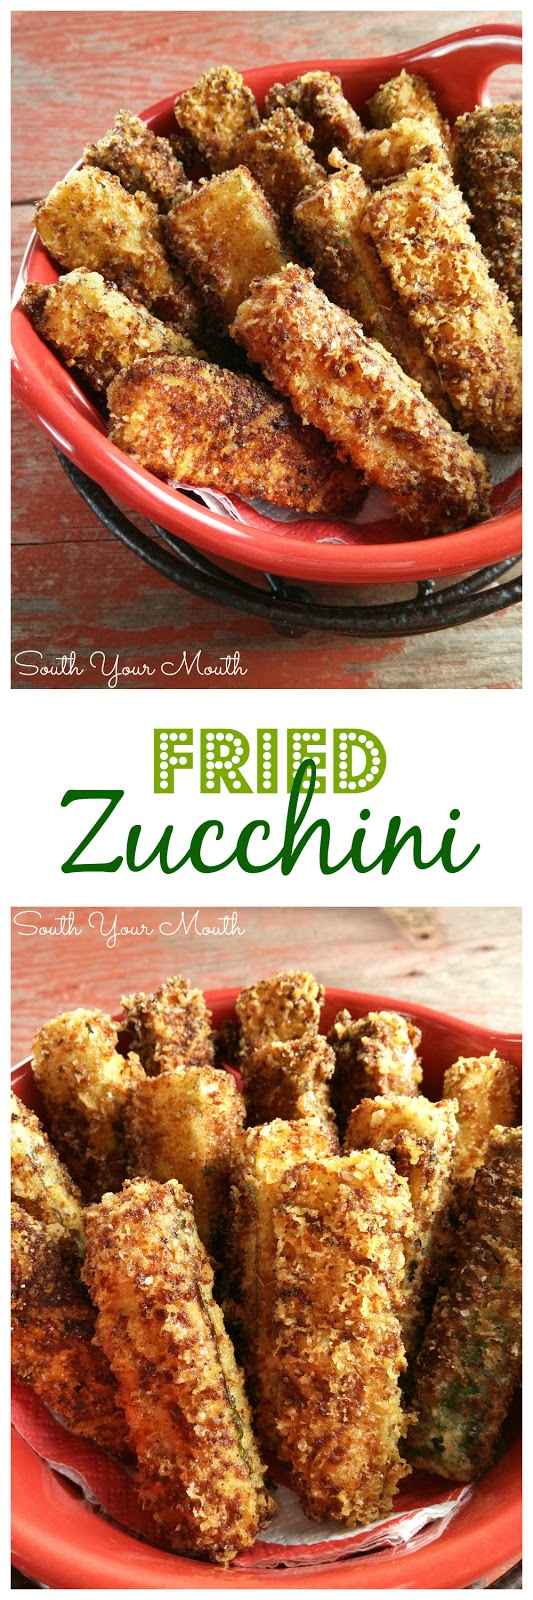 Delicious and easy fried zucchini! Dredged in grated asiago or parmesan and Italian bread crumbs then lightly fried in olive oil. #glutenfree #keto